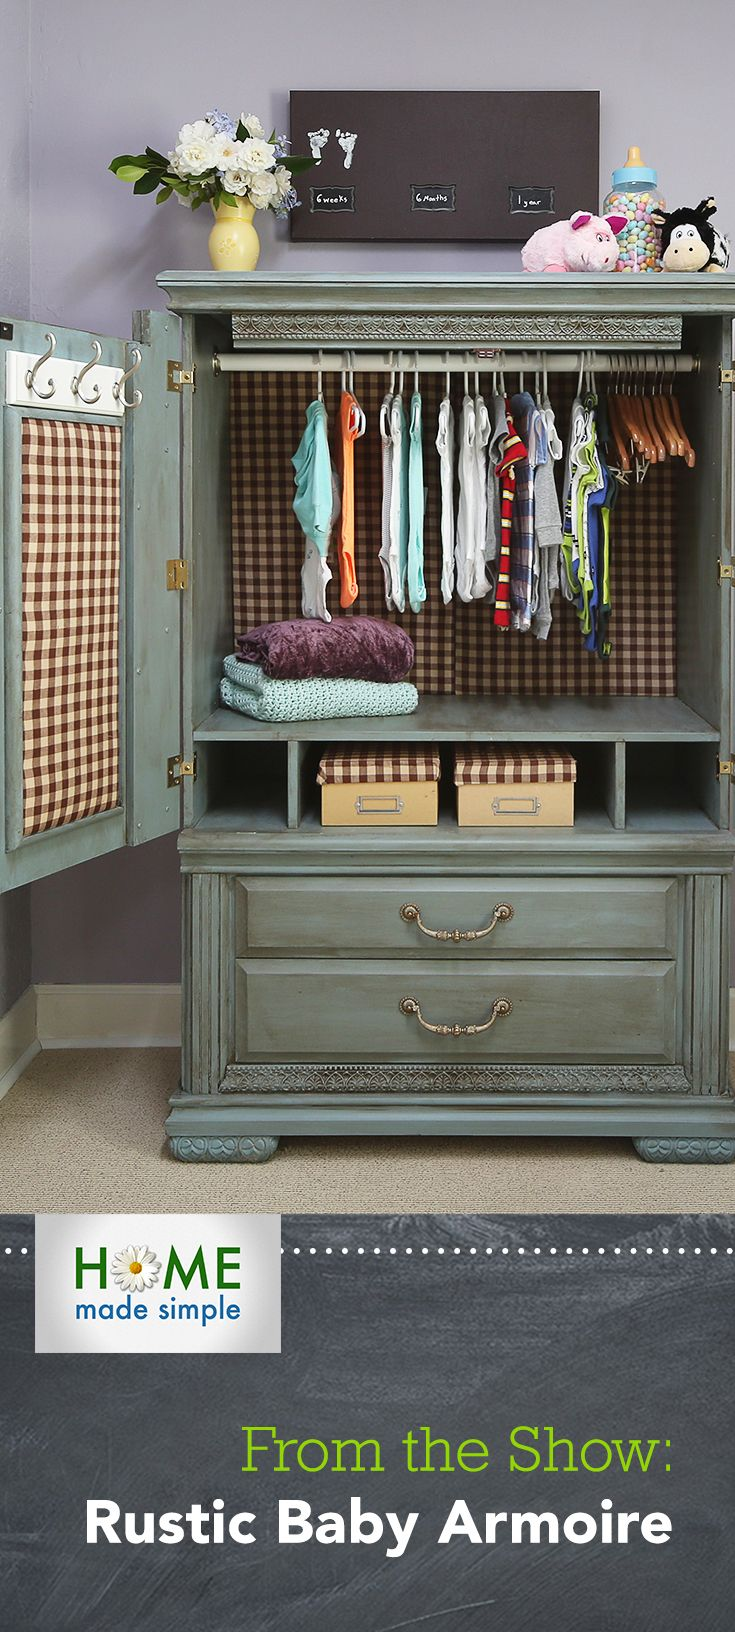 Add a shabby chic touch to your nursery with our step-by-step instructions for transforming an old entertainment center into a baby armoire. For more DIY decorating ideas, watch Home Made Simple, Saturdays at 9am/8C on OWN!